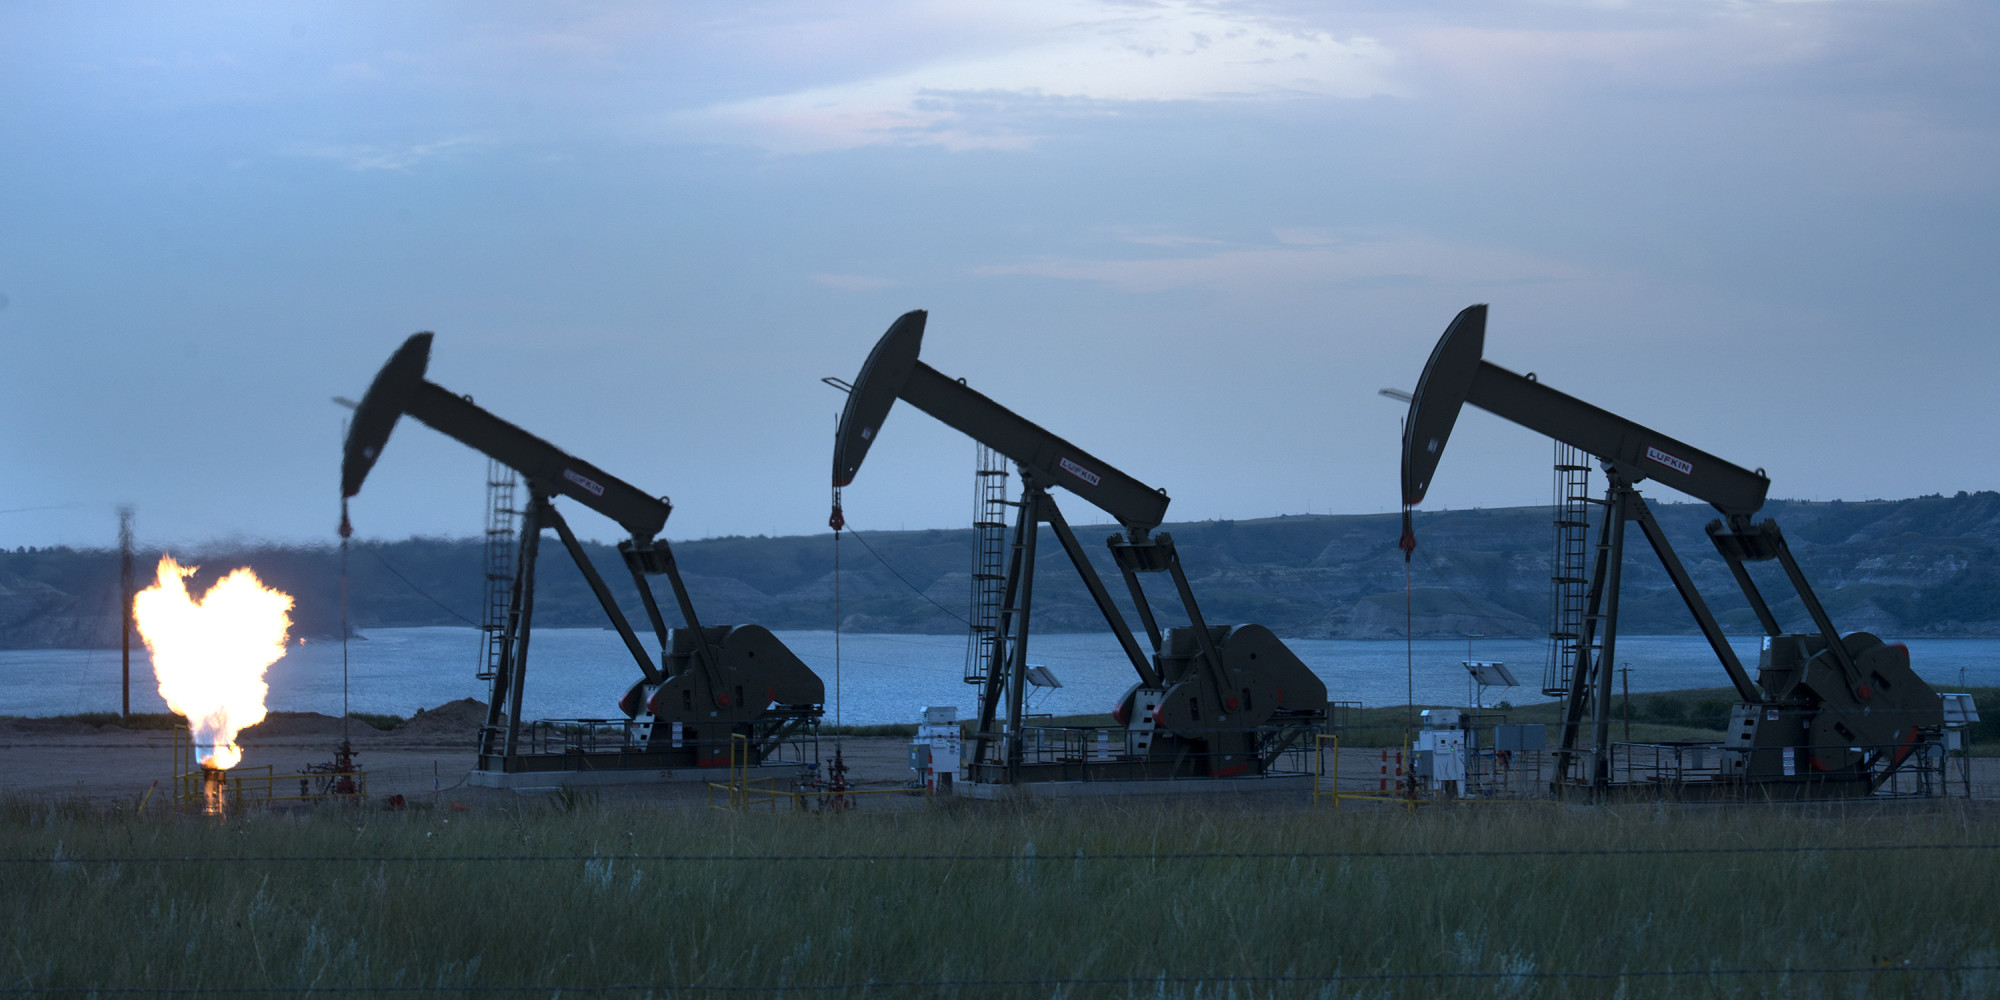 US EPA to release results of fracking study in 2012 ...